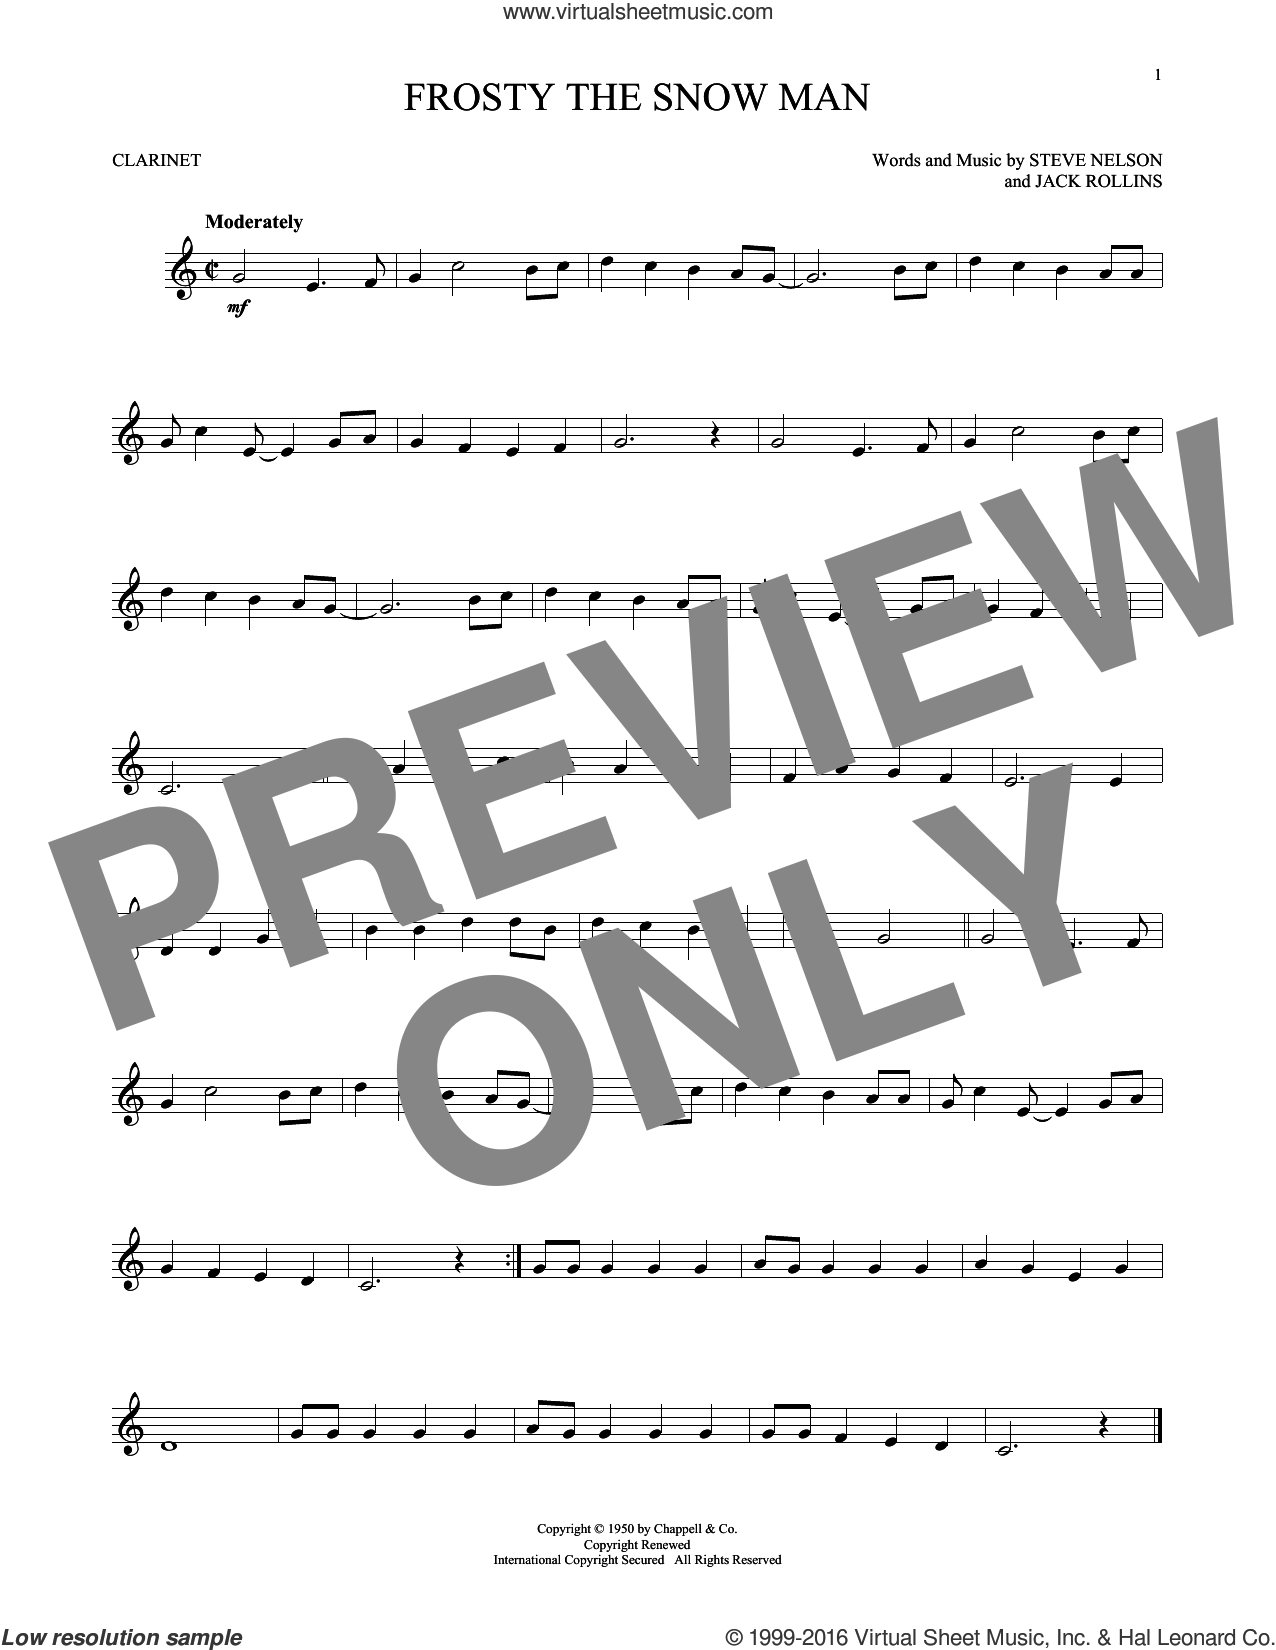 Frosty The Snow Man sheet music for clarinet solo by Steve Nelson, Jack Rollins and Jack Rollins & Steve Nelson, intermediate skill level